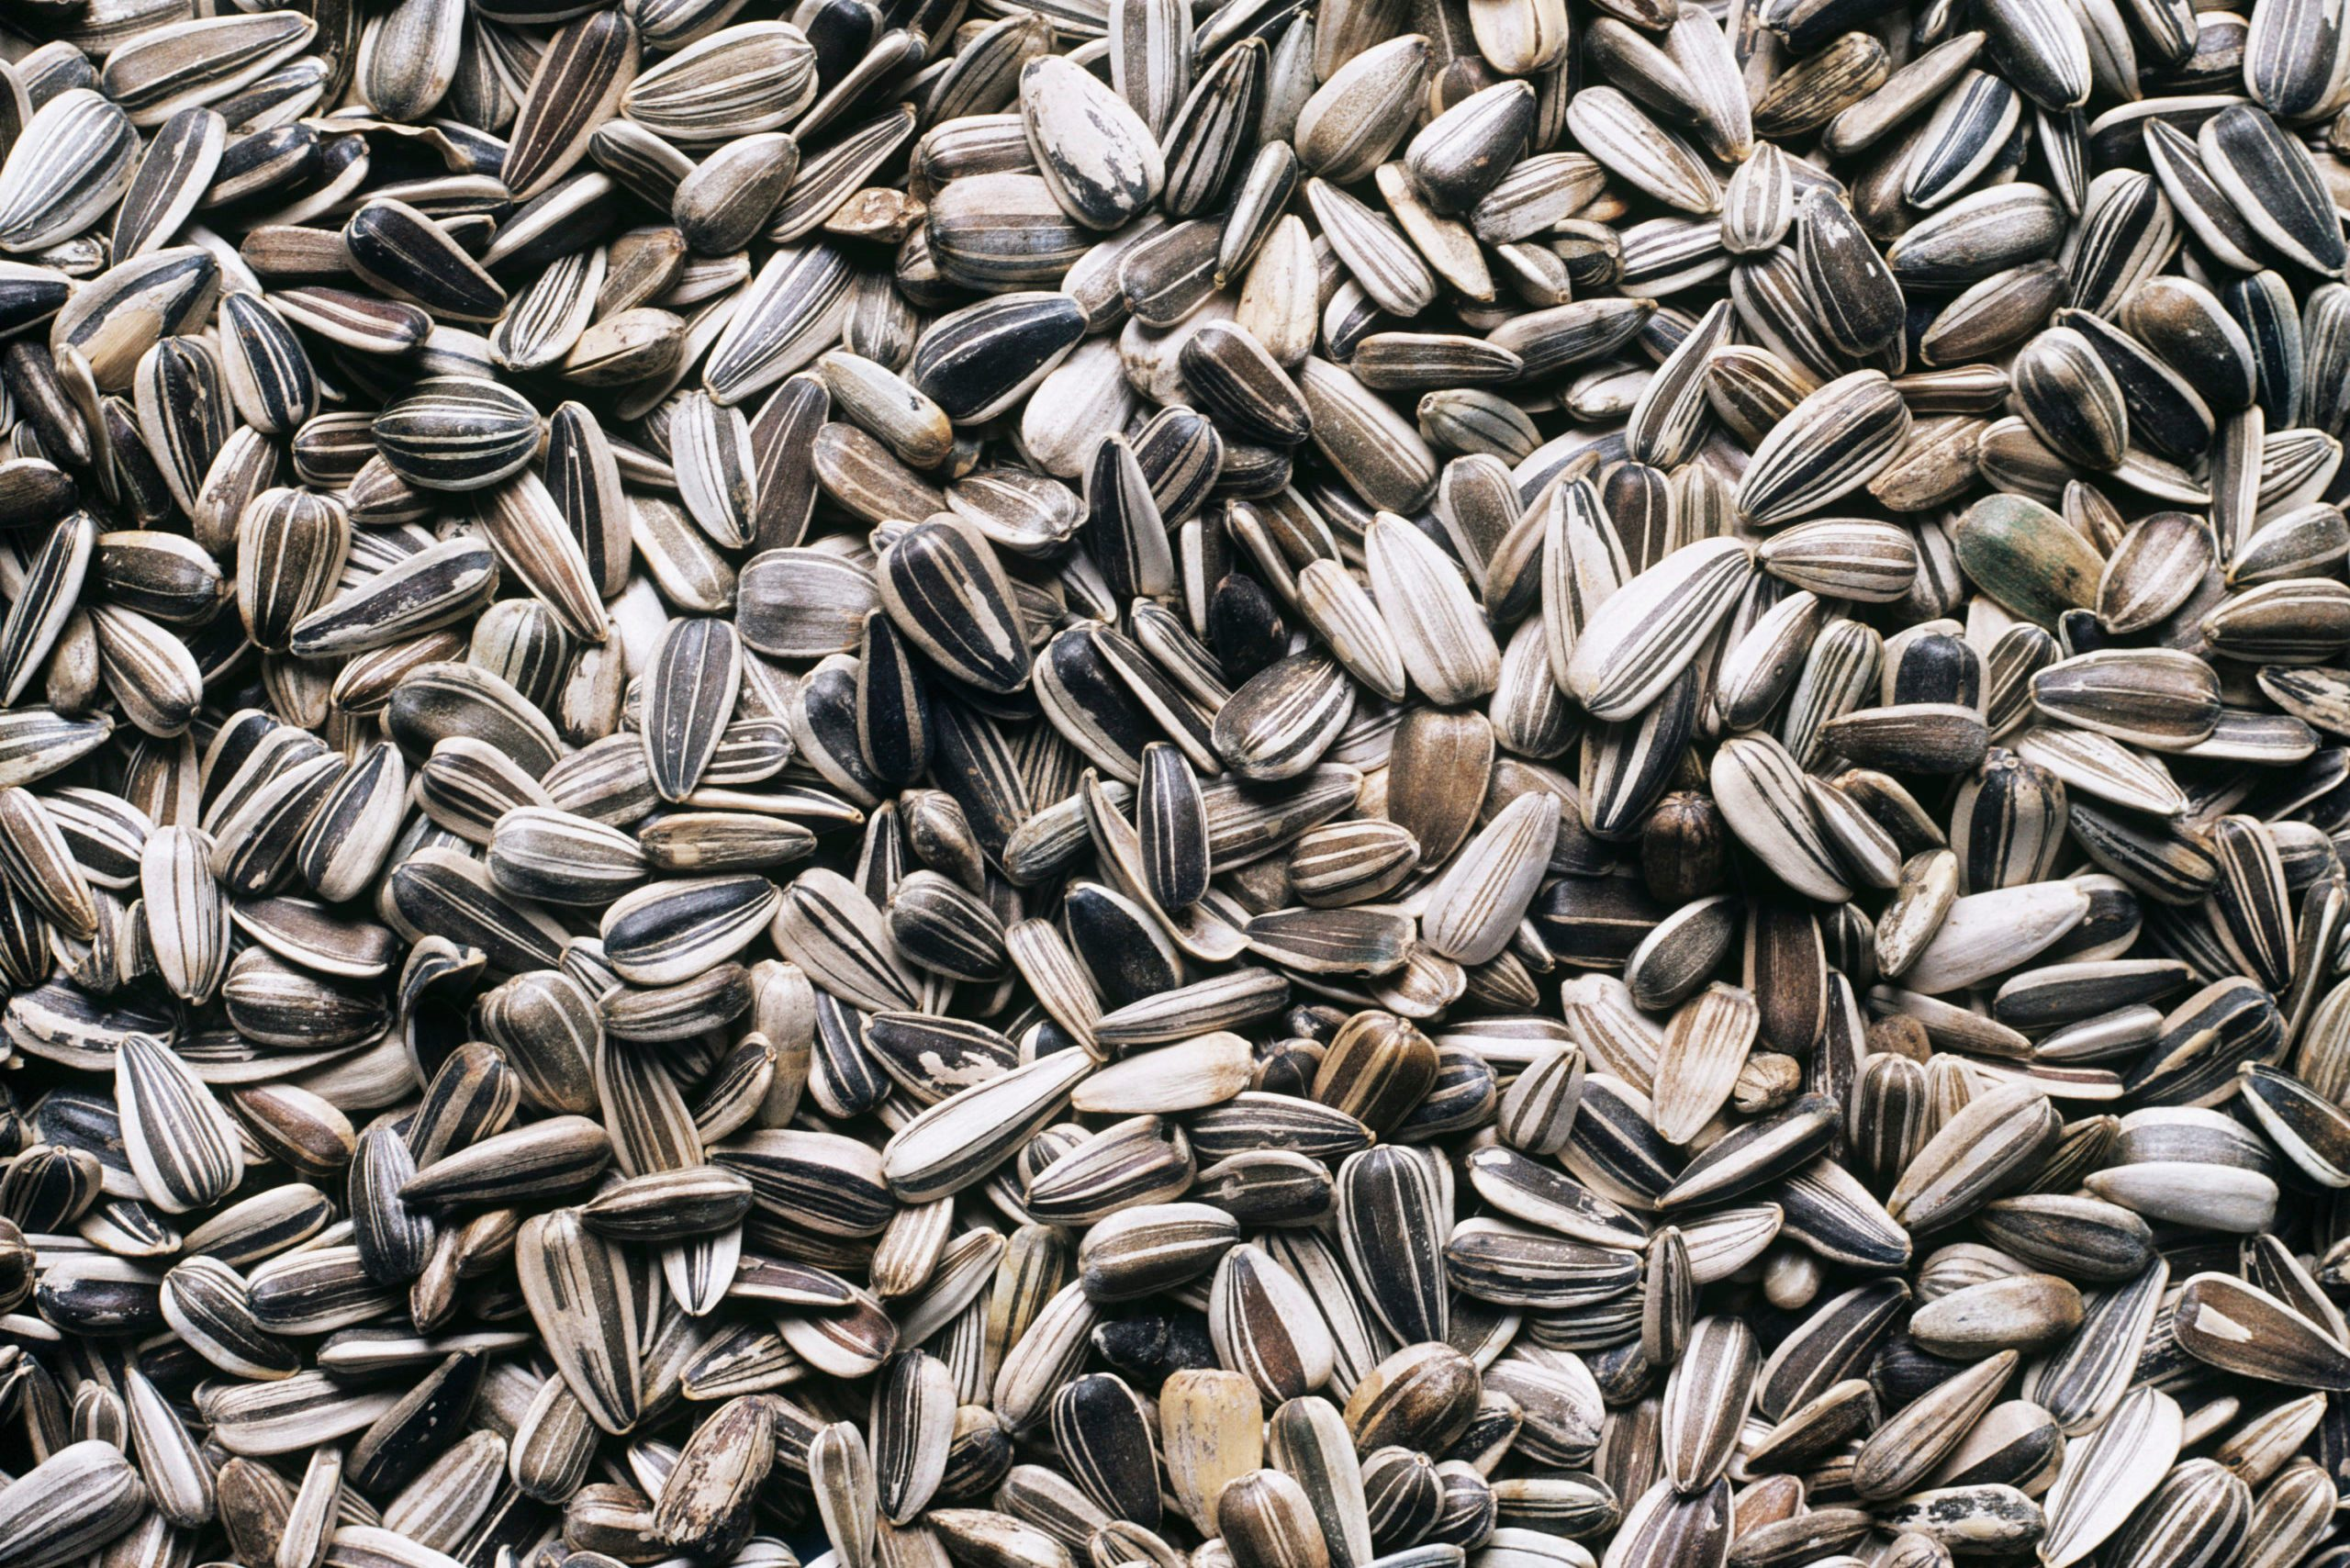 Sunflower seeds, close-up